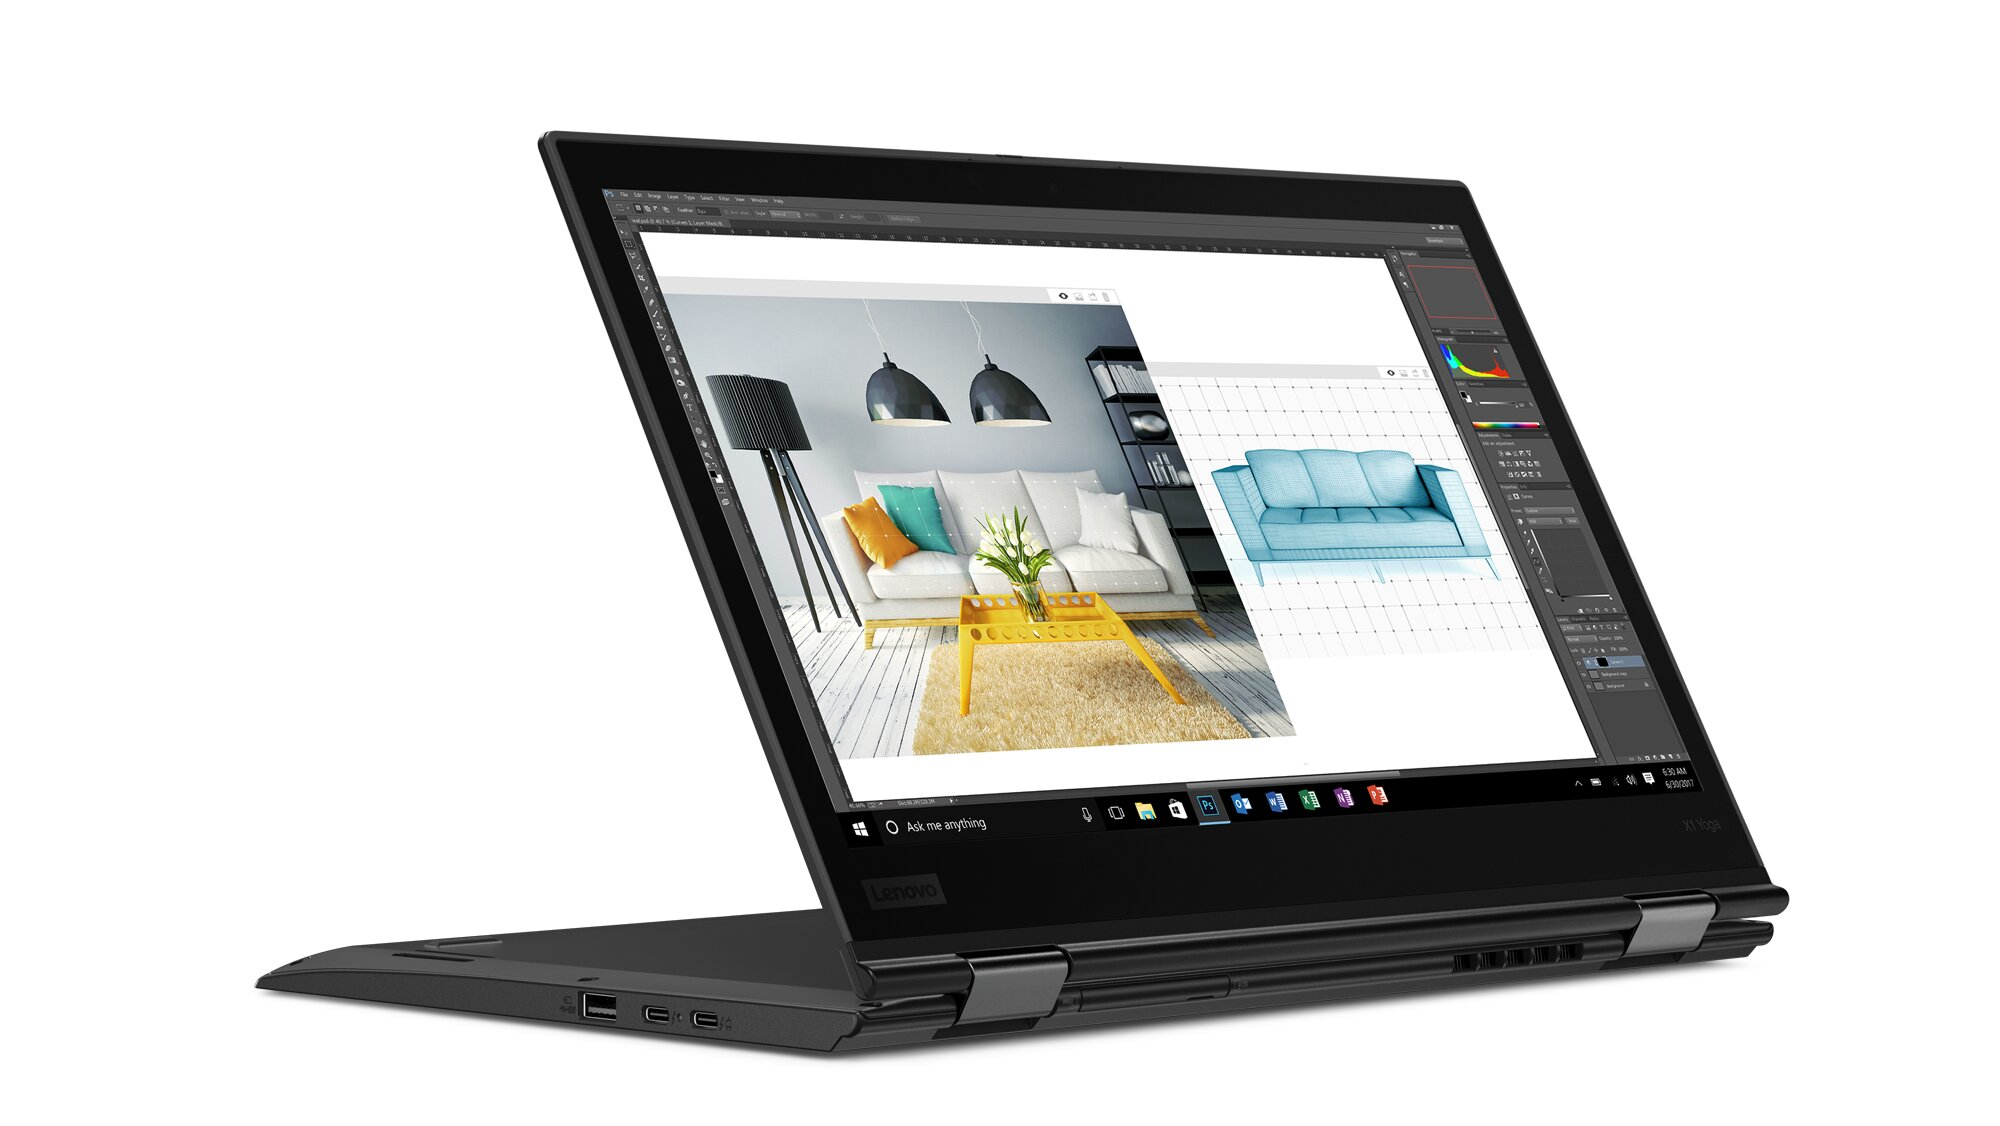 Laptop Lenovo ThinkPad X1 Yoga Gen 3 20LDS00M00 - Intel core i7 - 8550U, 8GB RAM, SSD 256GB, Intel UHD Graphics 620, 14 inch